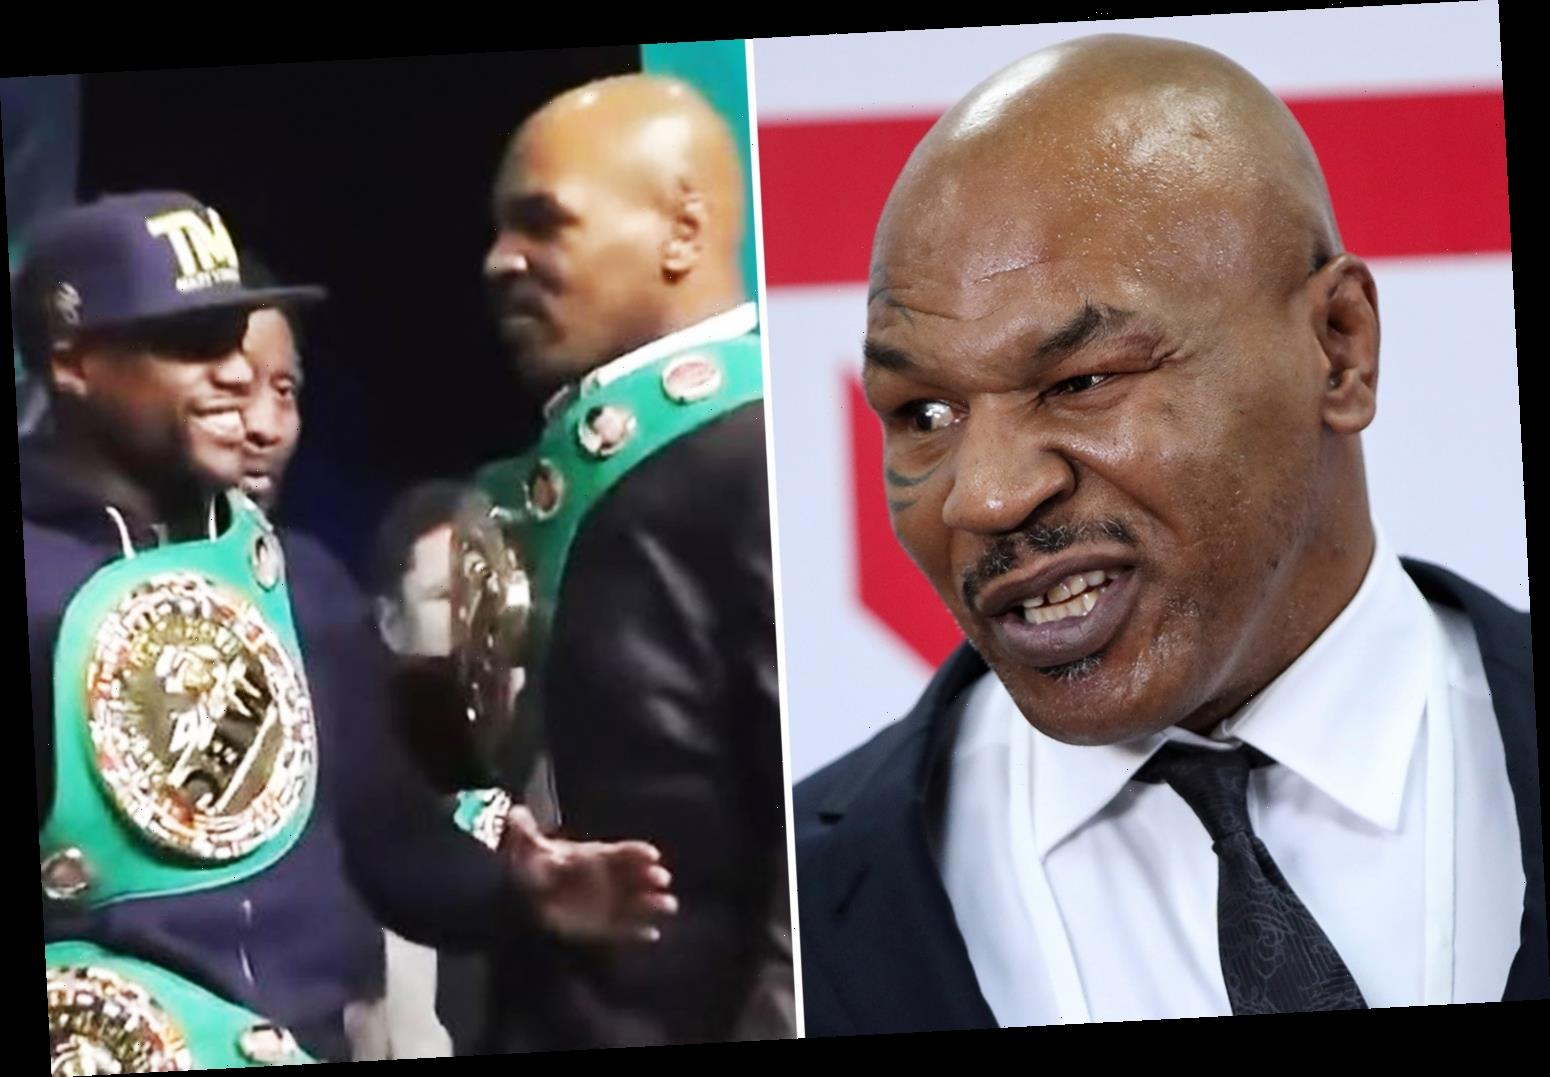 Mike Tyson says he'd 'kick Floyd Mayweather's a**e' if the two boxing legends ever game to blows – The Sun